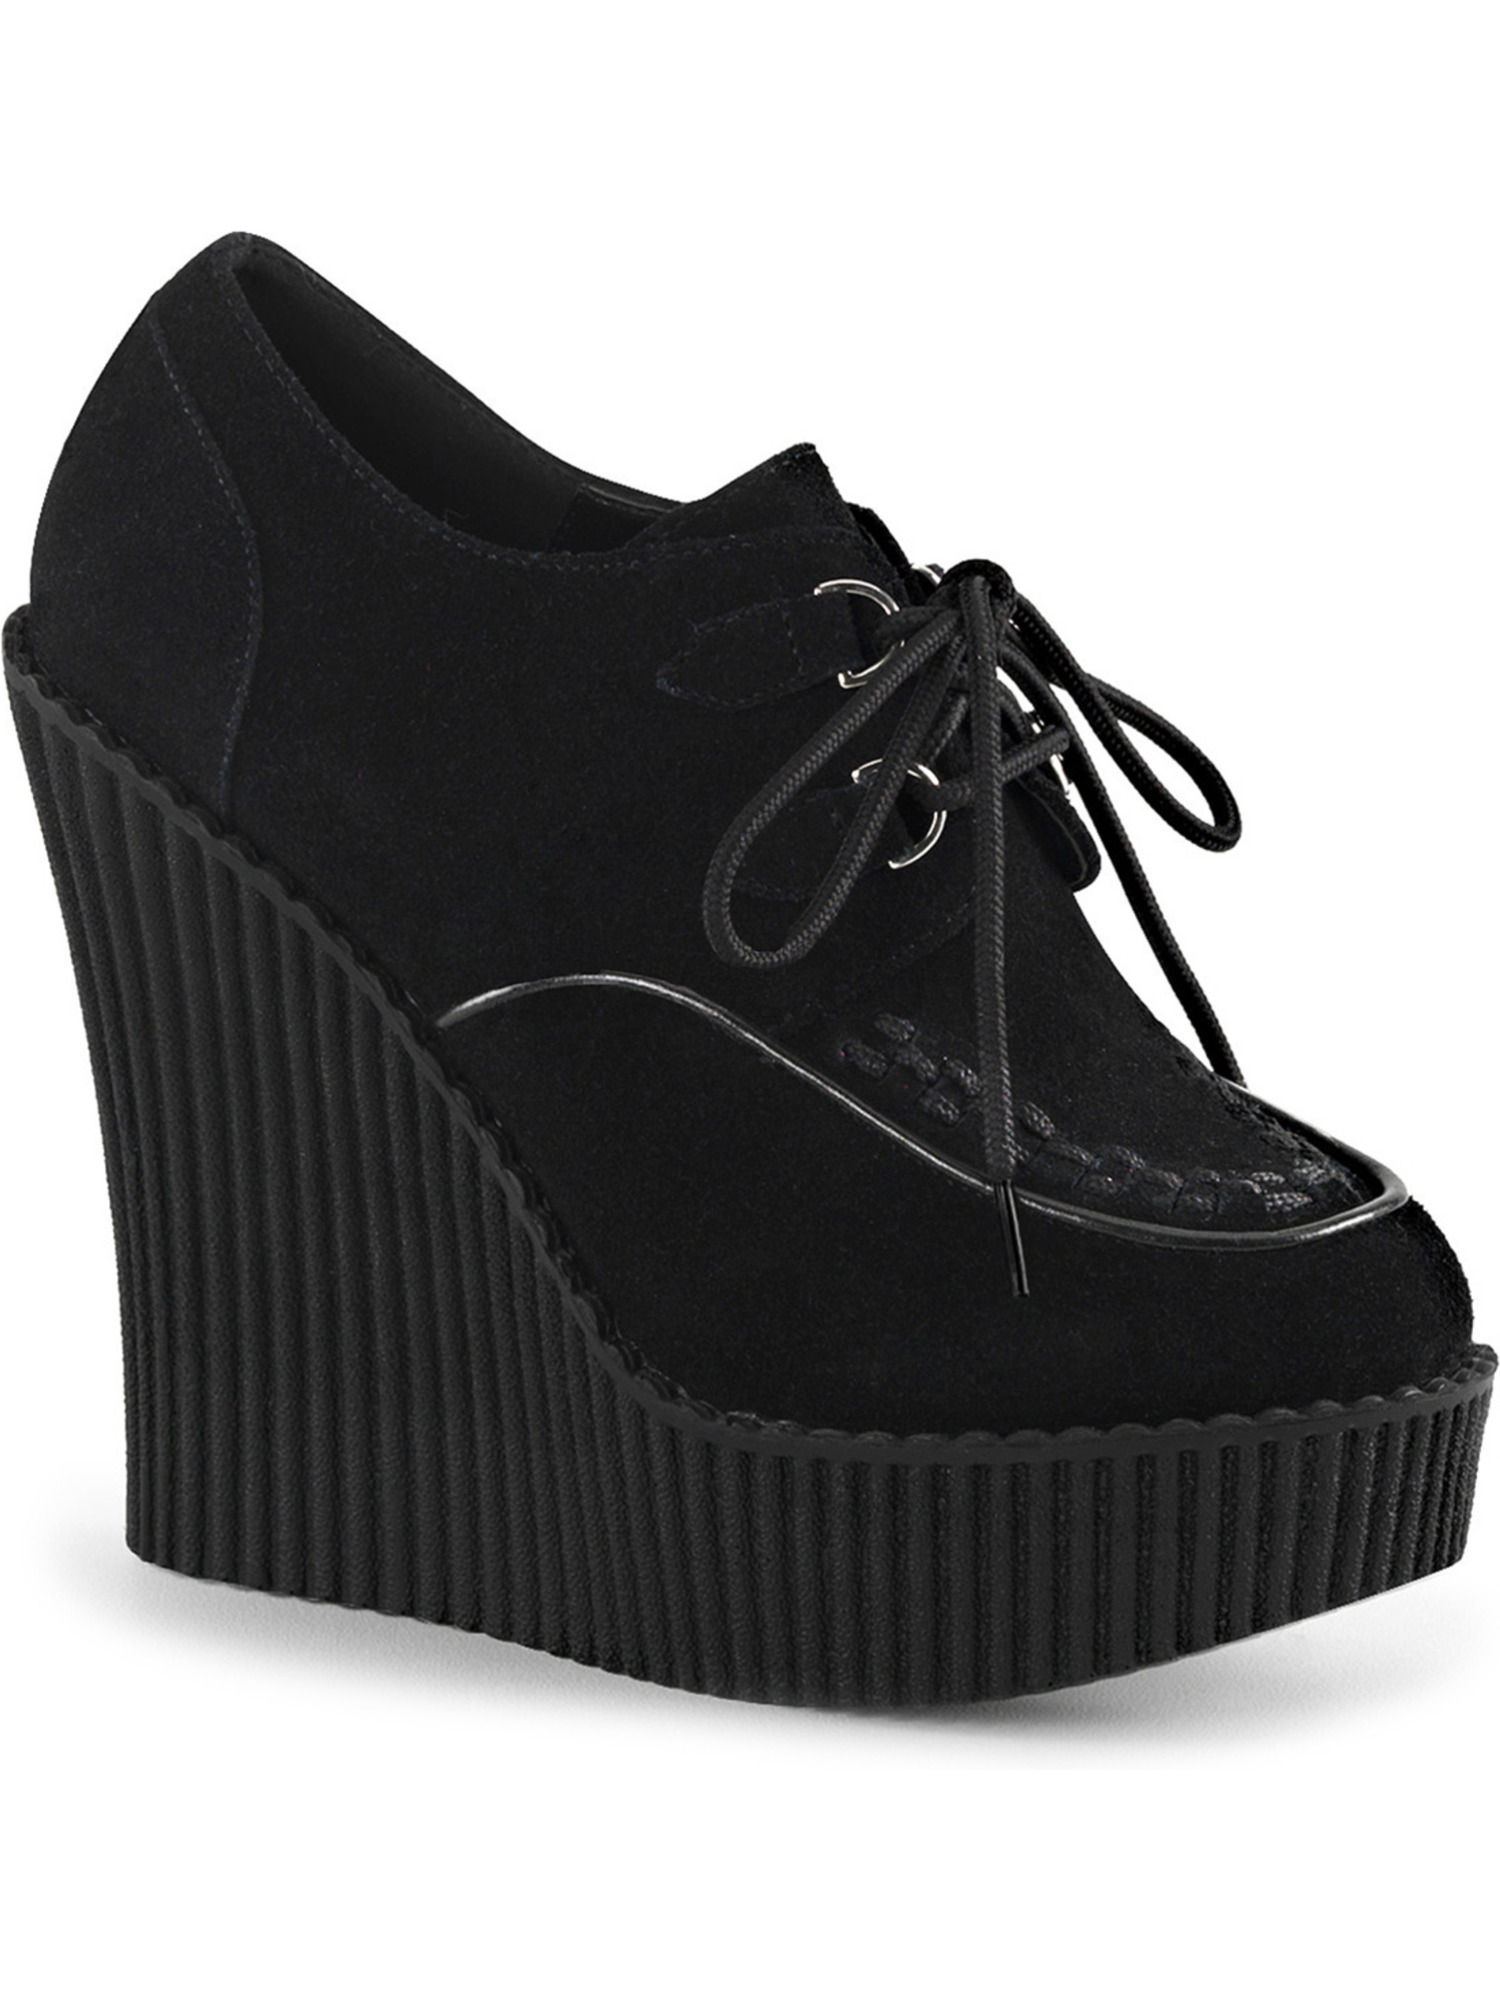 Womens Black Suede Wedges Vegan Platform Creepers Shoes Lace Up Boots 5 1/4 In